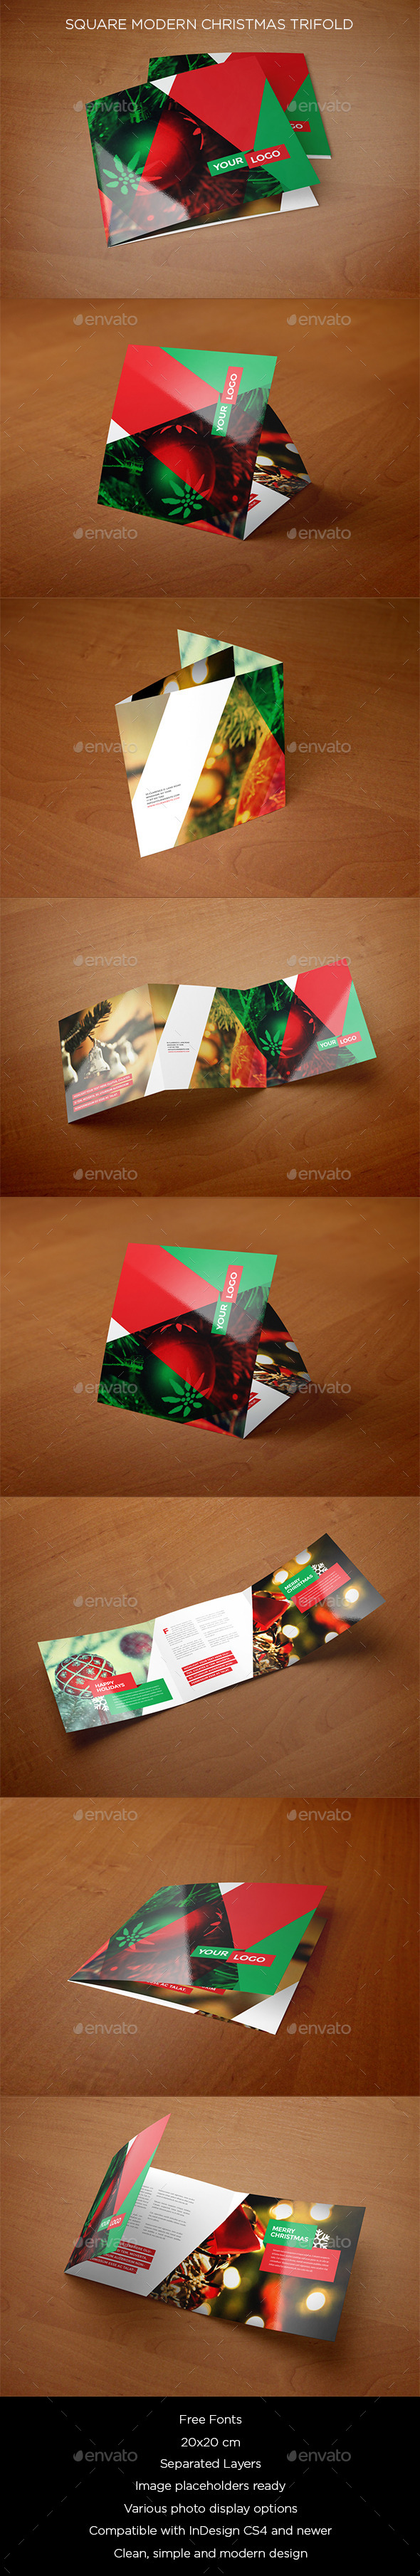 GraphicRiver Square Modern Christmas Trifold 9537694